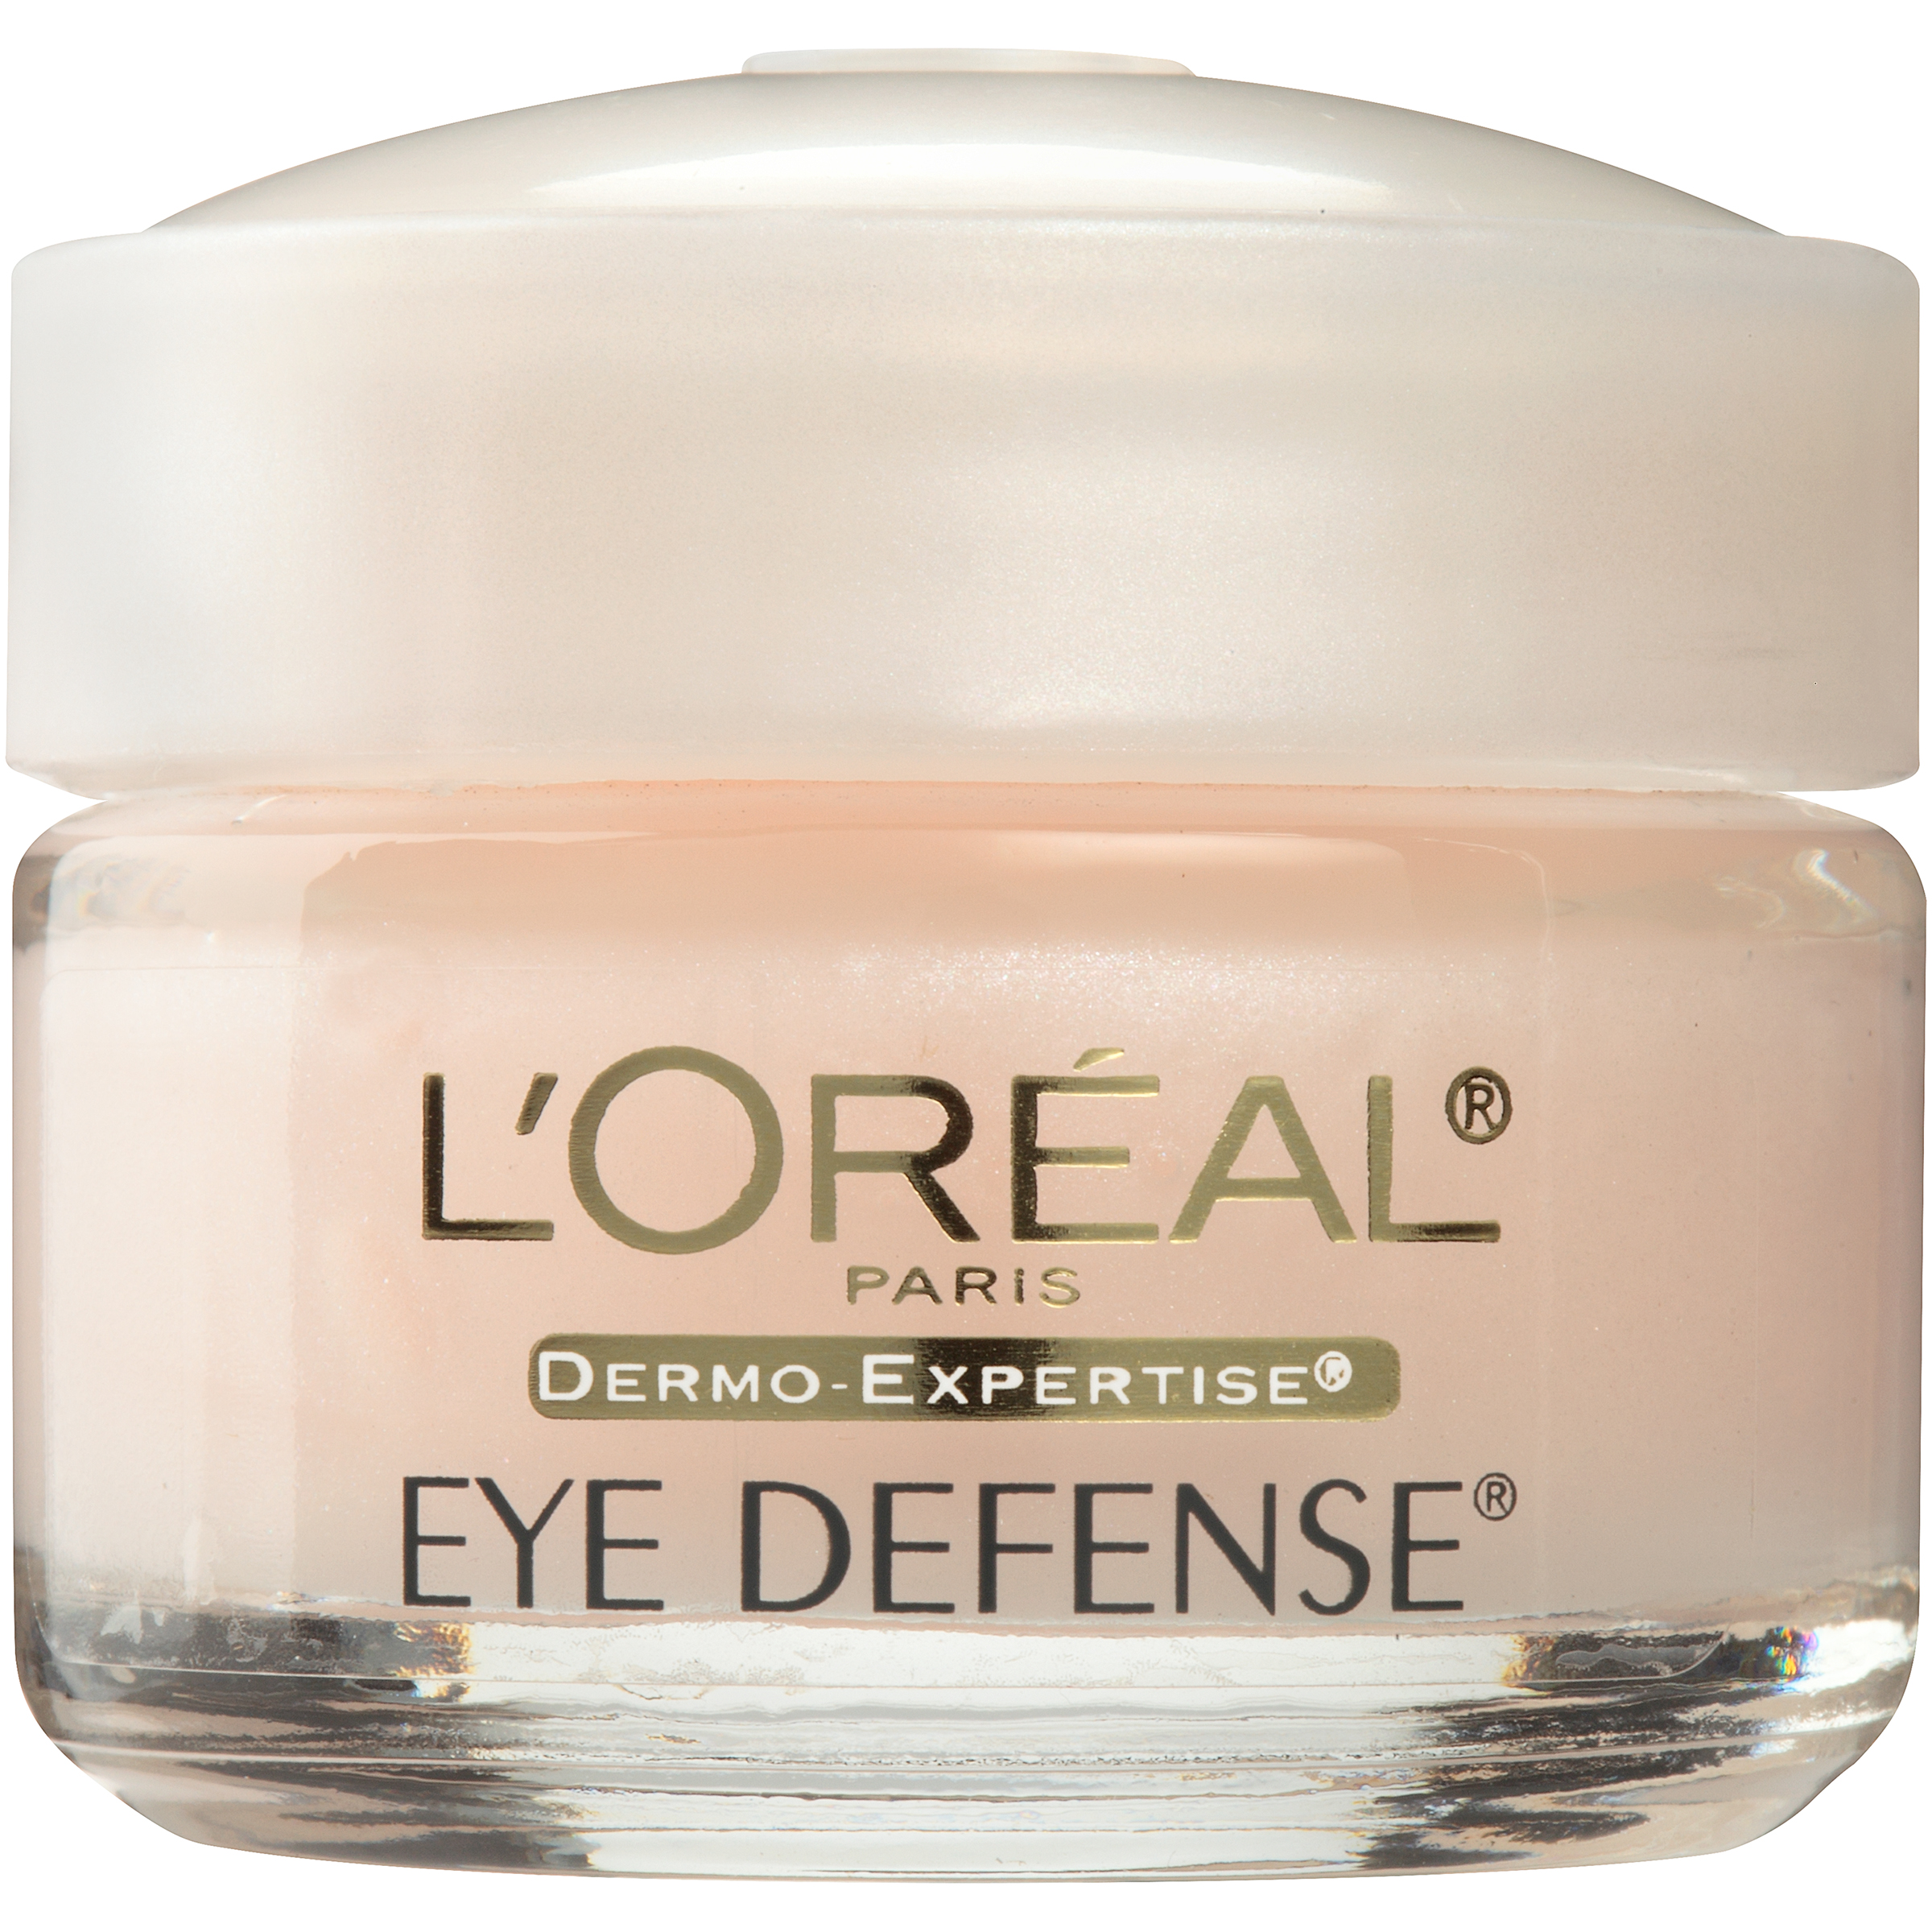 L'Oreal Paris Dermo Expertise Eye Defense Eye Cream